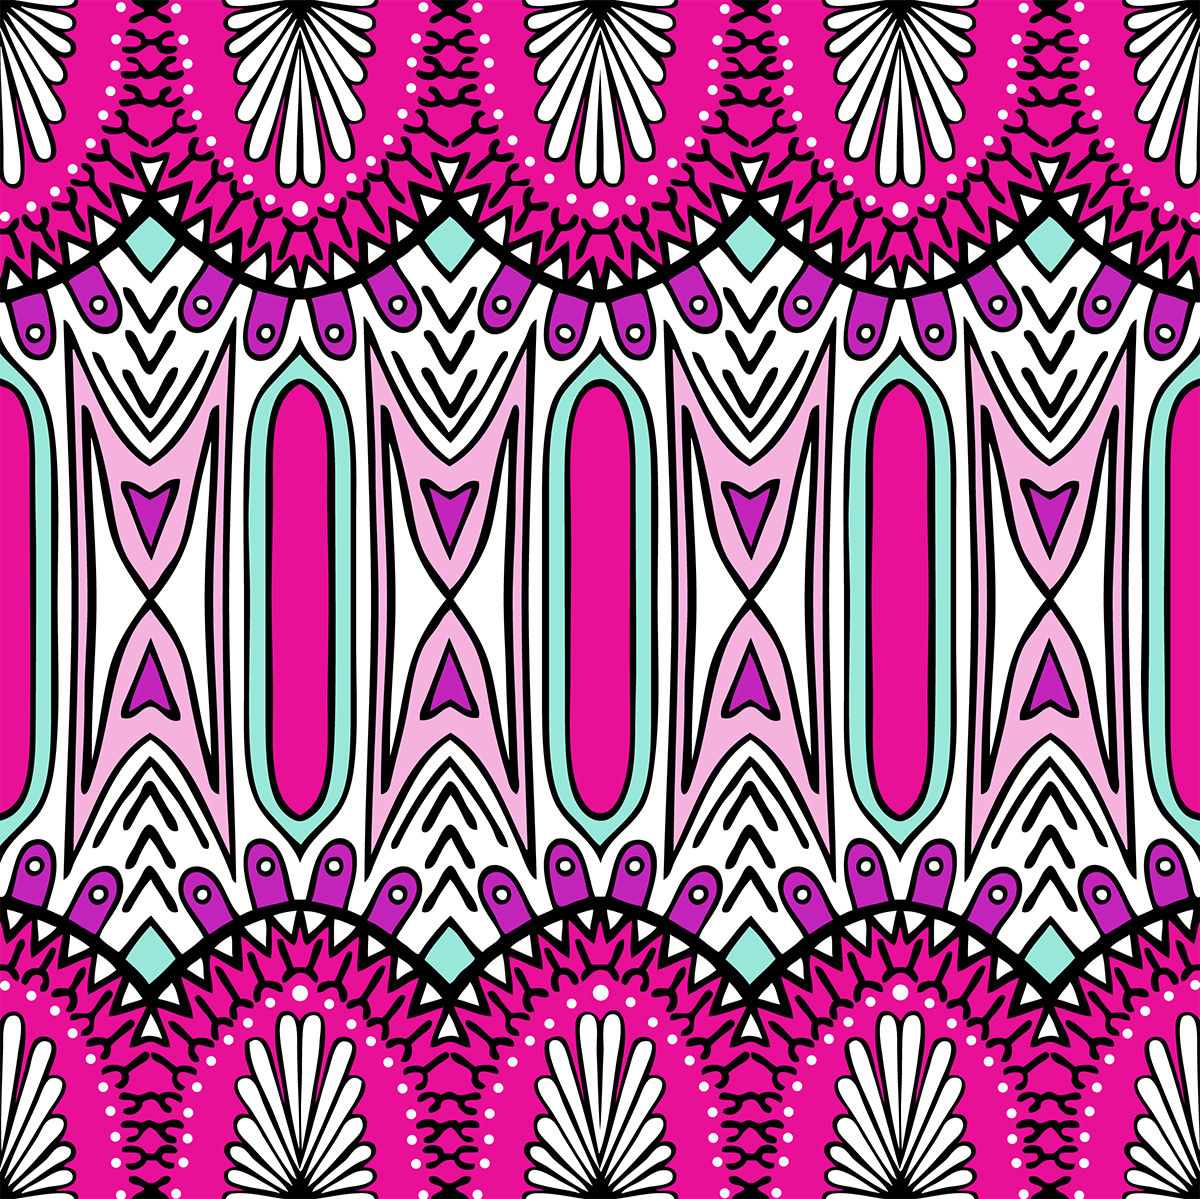 McKnight-NOUVEAU-Pattern-09-pink-purp-green copy.png